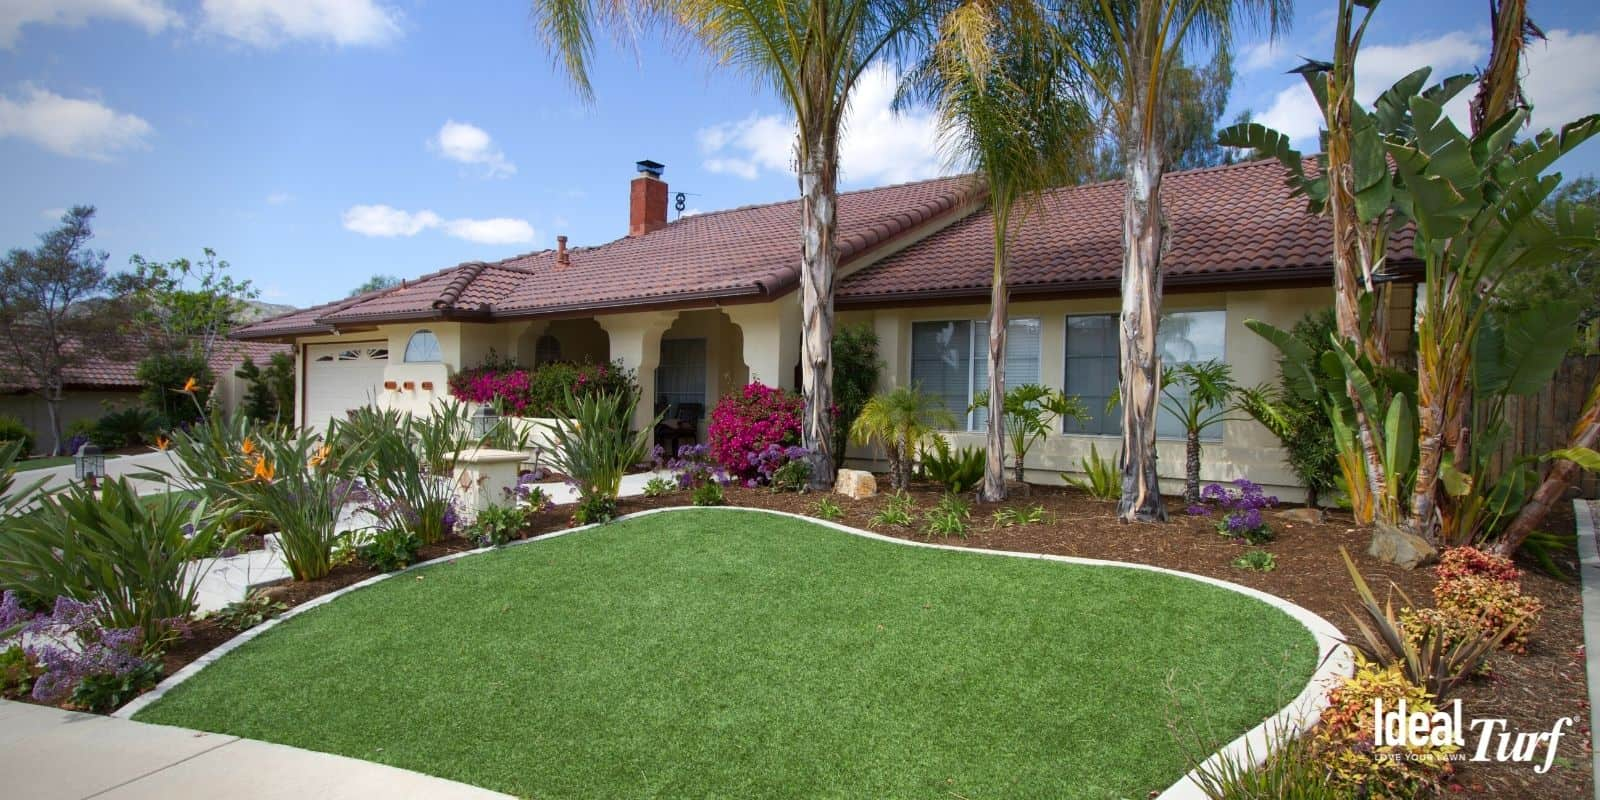 Artificial turf front yard lawn